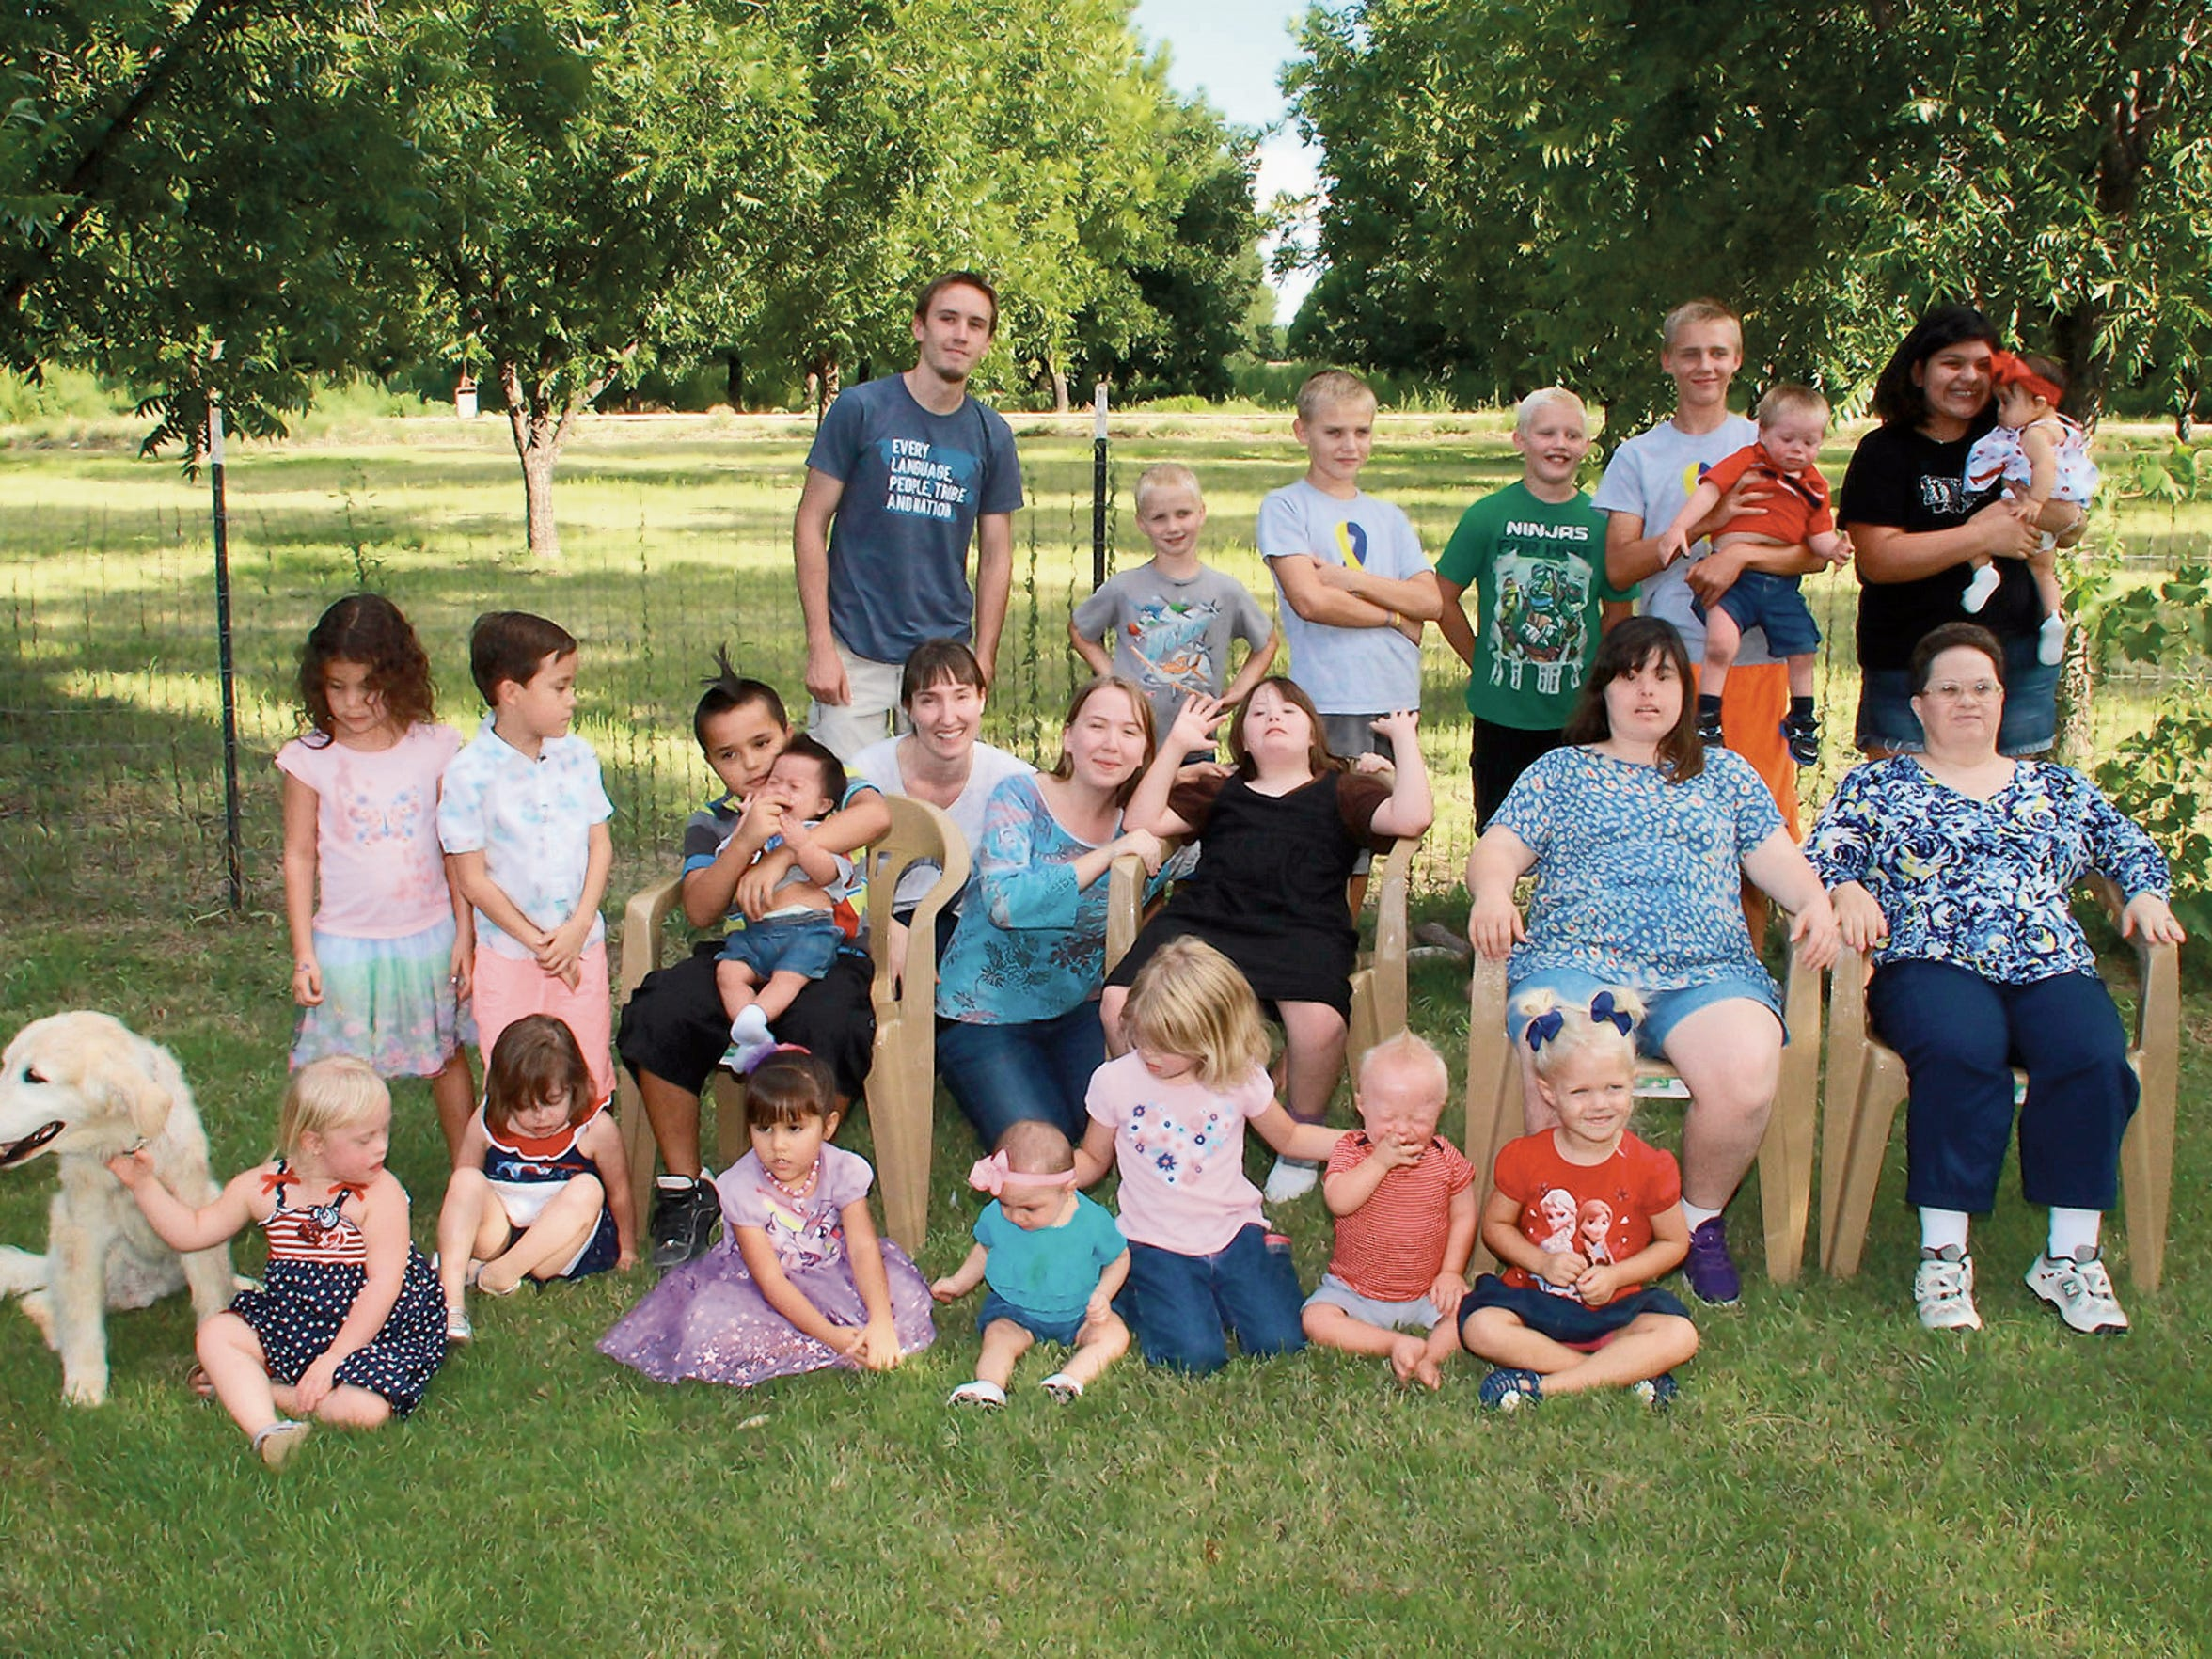 A group photo of people who attended a barbecue hosted by the nonprofit organization Down Syndrome Families of Las Cruces in July. Along with barbecues, the group  meets regularly for pot lucks, play dates, swimming lessons and other planned events that offer support and friendship for families who have children with Down syndrome.